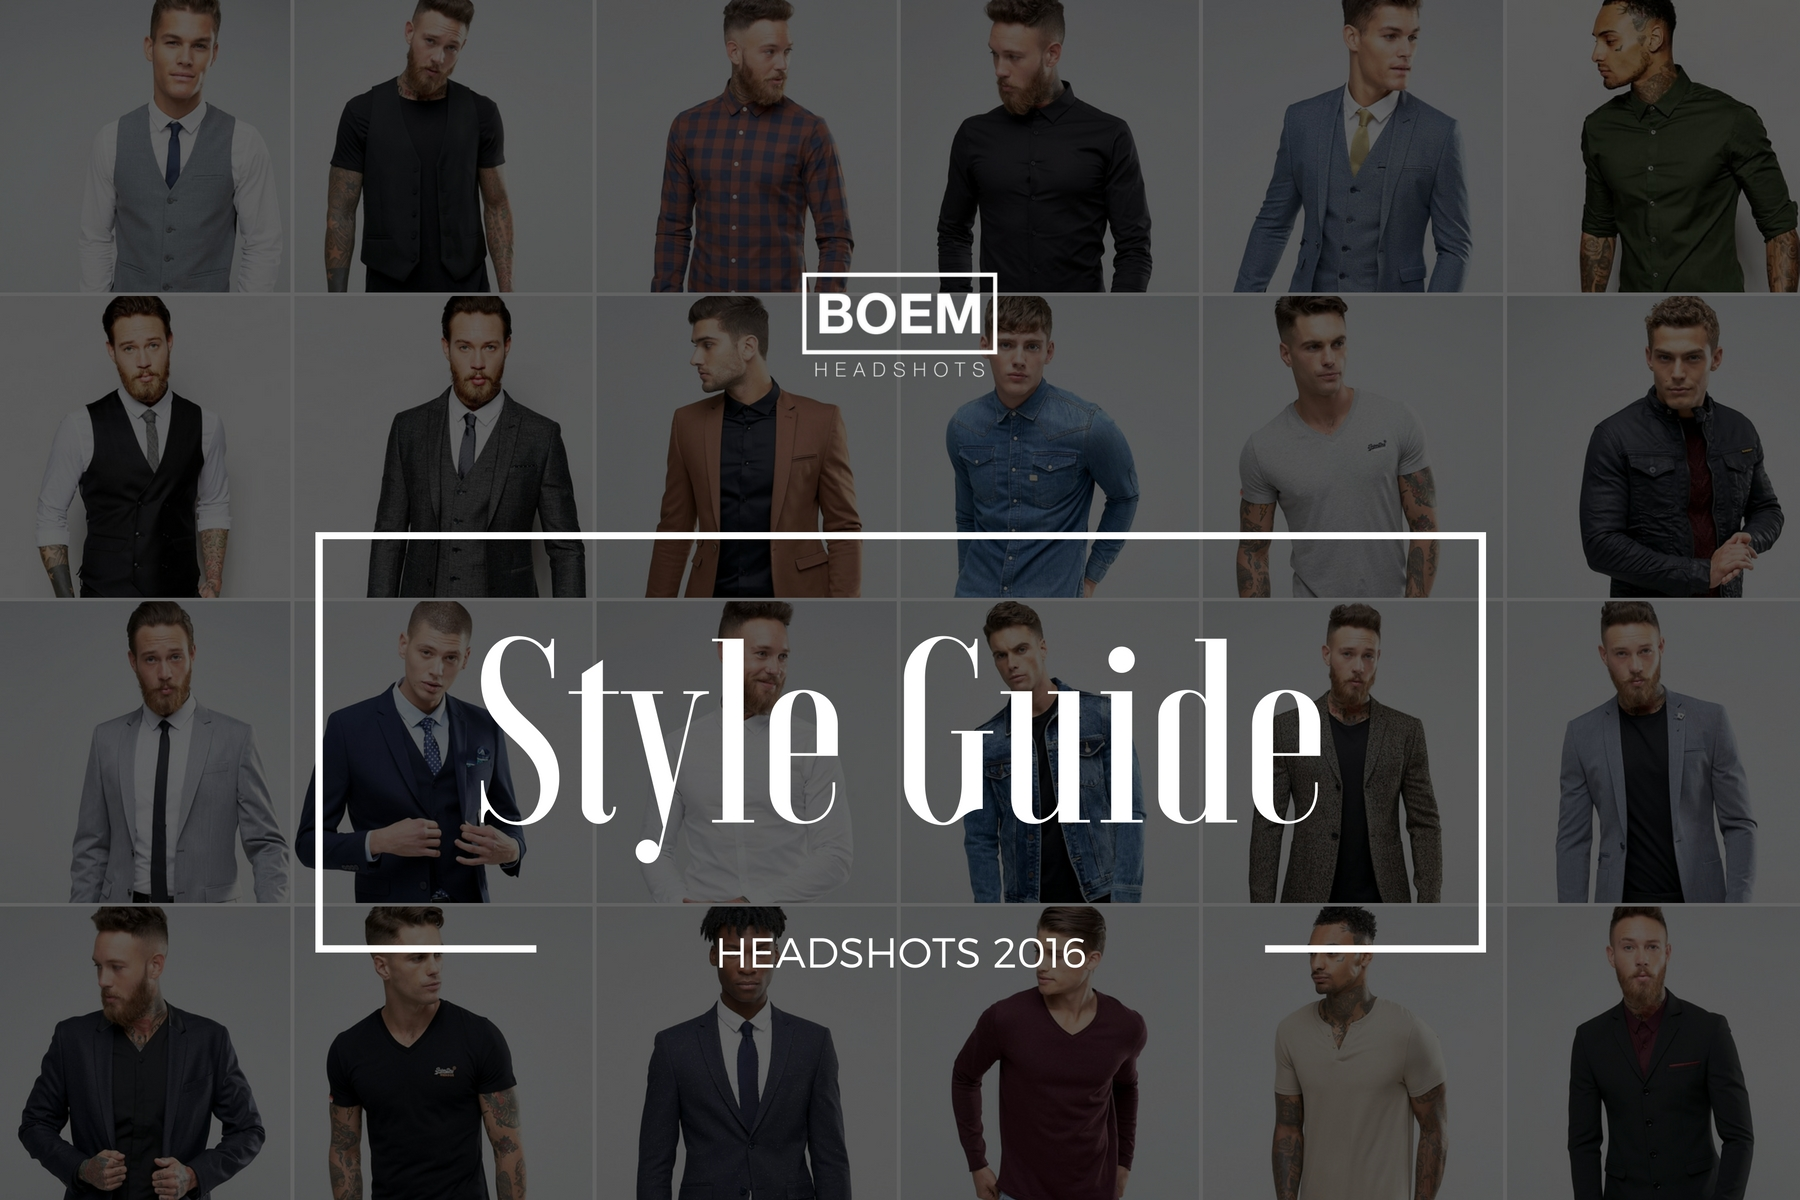 Not sure what to bring to your headshot session? Here is our in-depth guide to build a great headshot wardrobe!